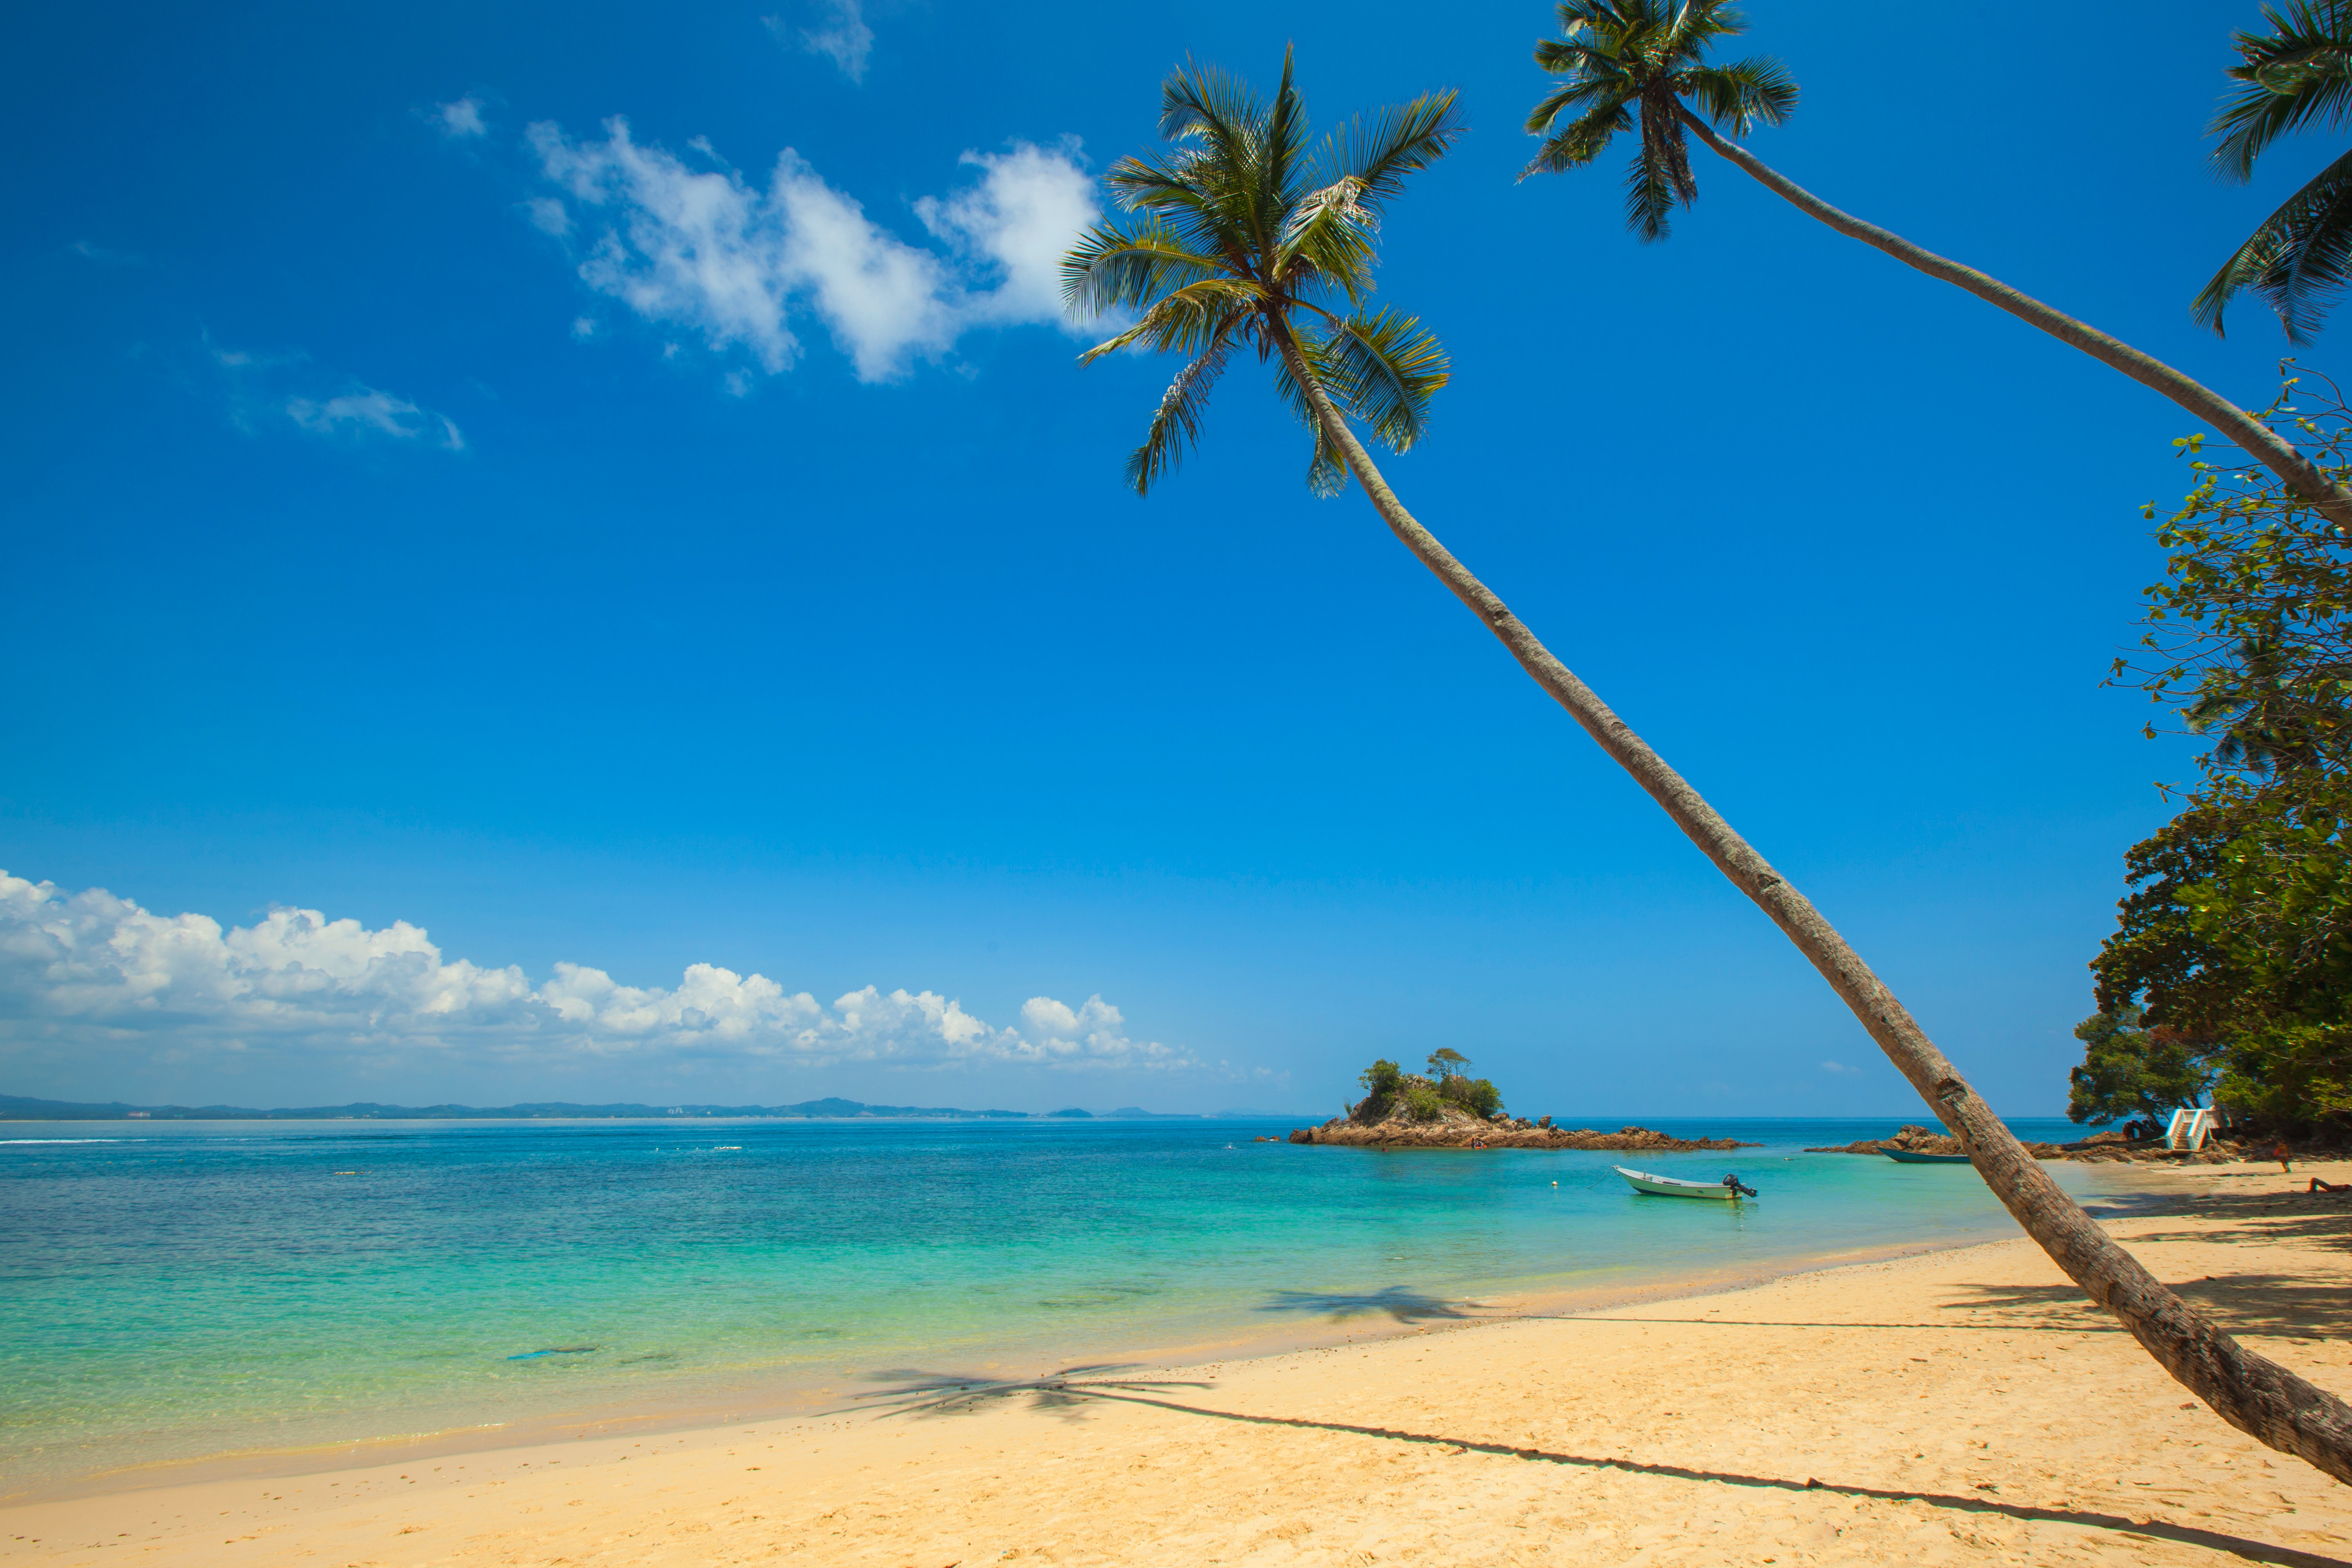 Tropical Island Beach Ambience Sound: Beaches Pictures For Backgrounds